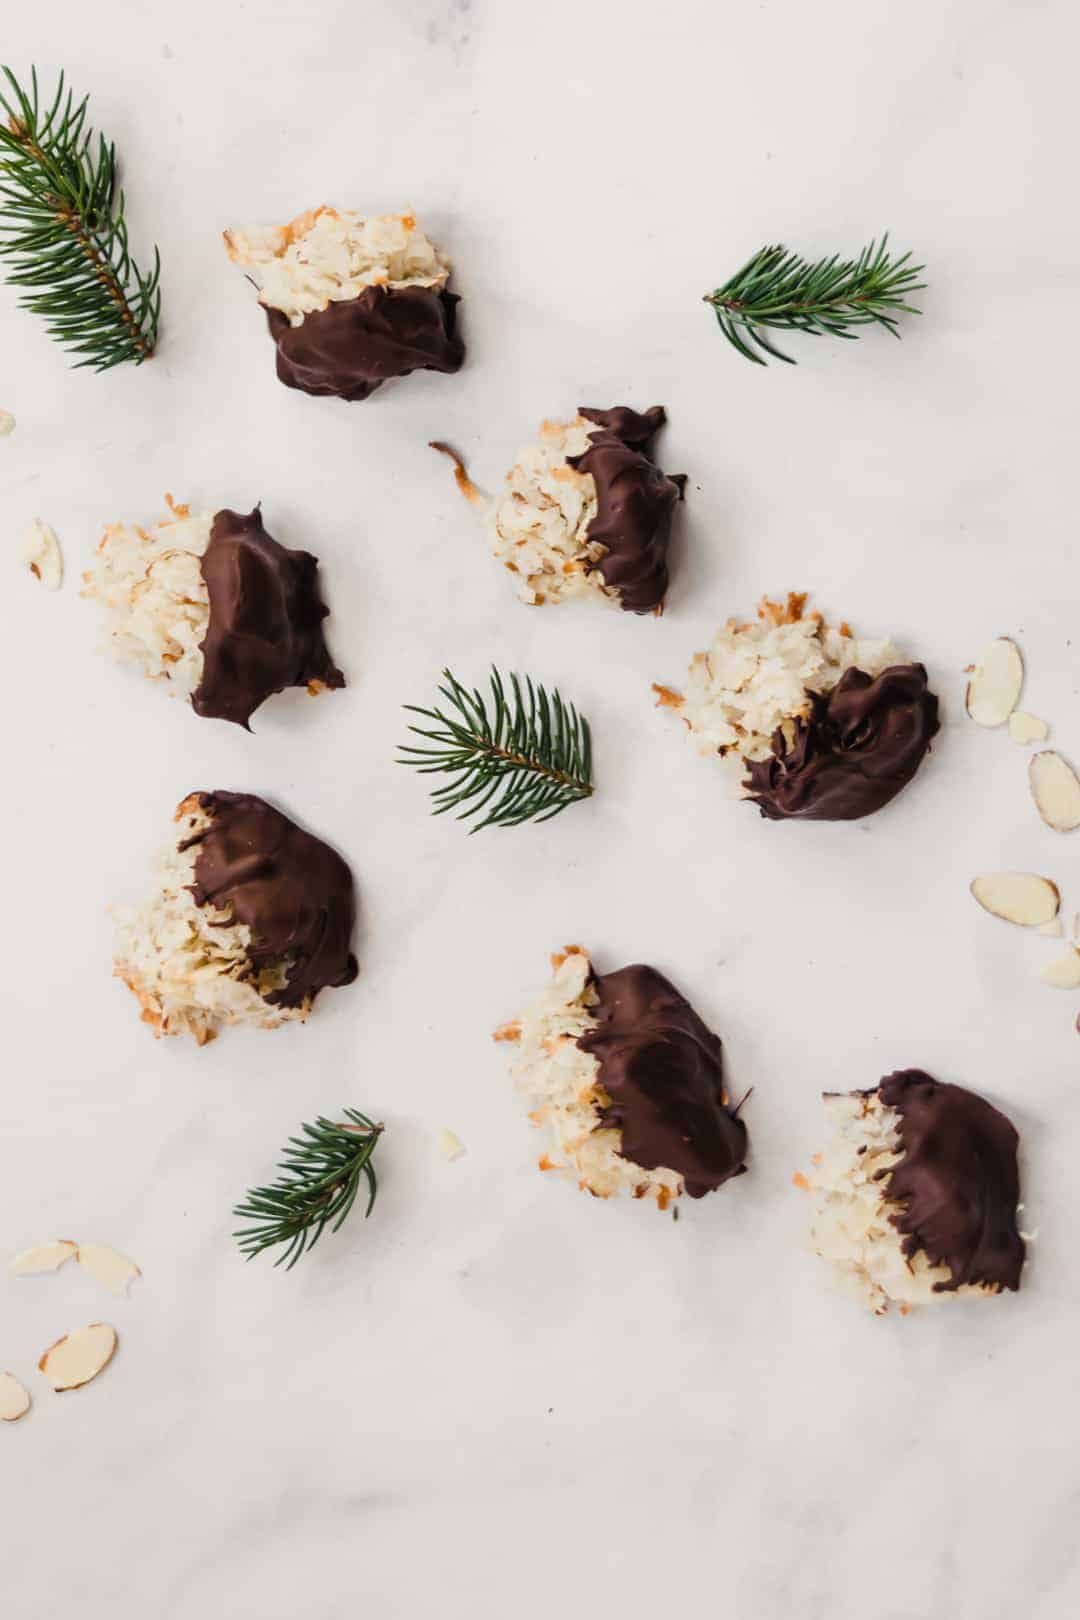 Coconut Macaroons dipped in chocolate with almonds and pine sprigs on marble